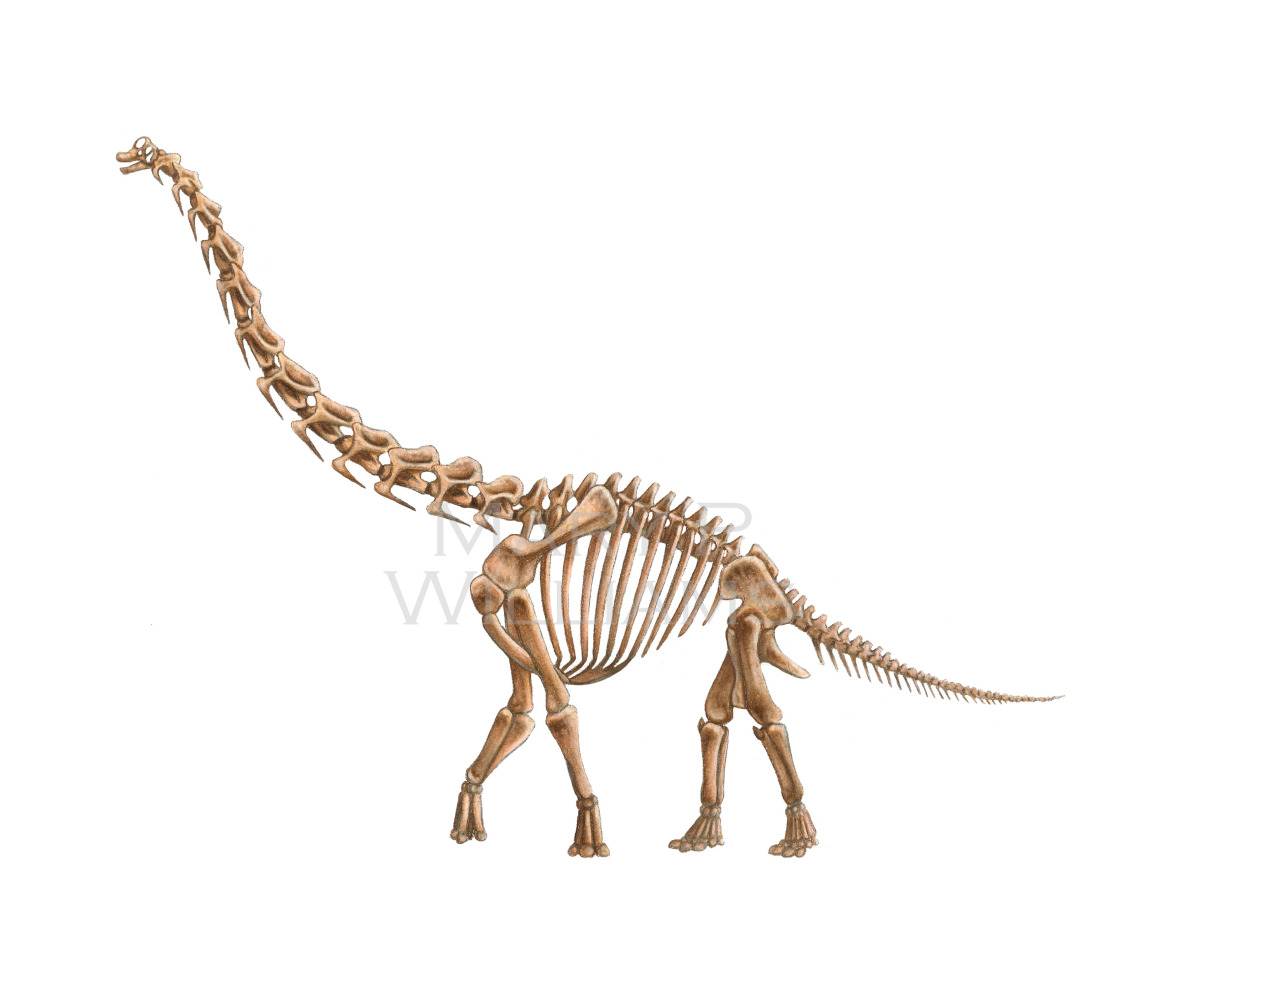 marywilliams:  My Brachiosaurus reconstructions. The musculature is based heavily off of our extant friend the giraffe. I'll finish this series off with the skin—I'll hopefully start and finish it today and have it up here sometime next week. :)